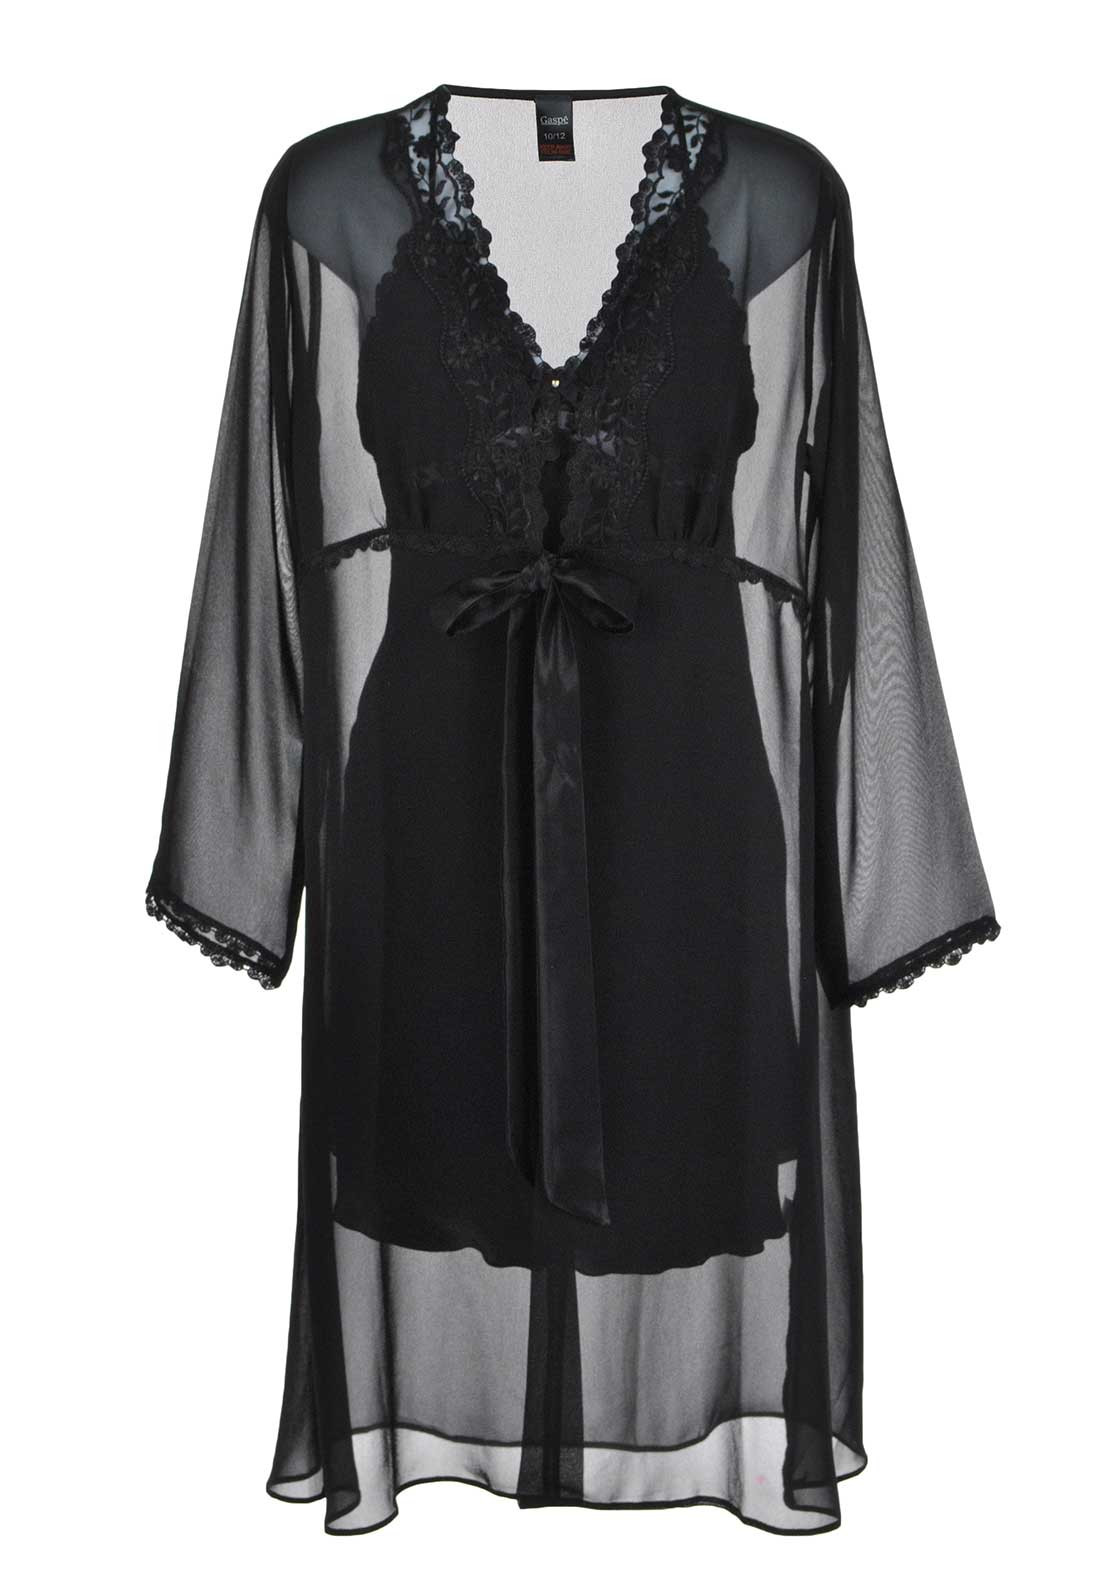 Gaspe Satin Chemise Nightdress with Chiffon Robe, Black